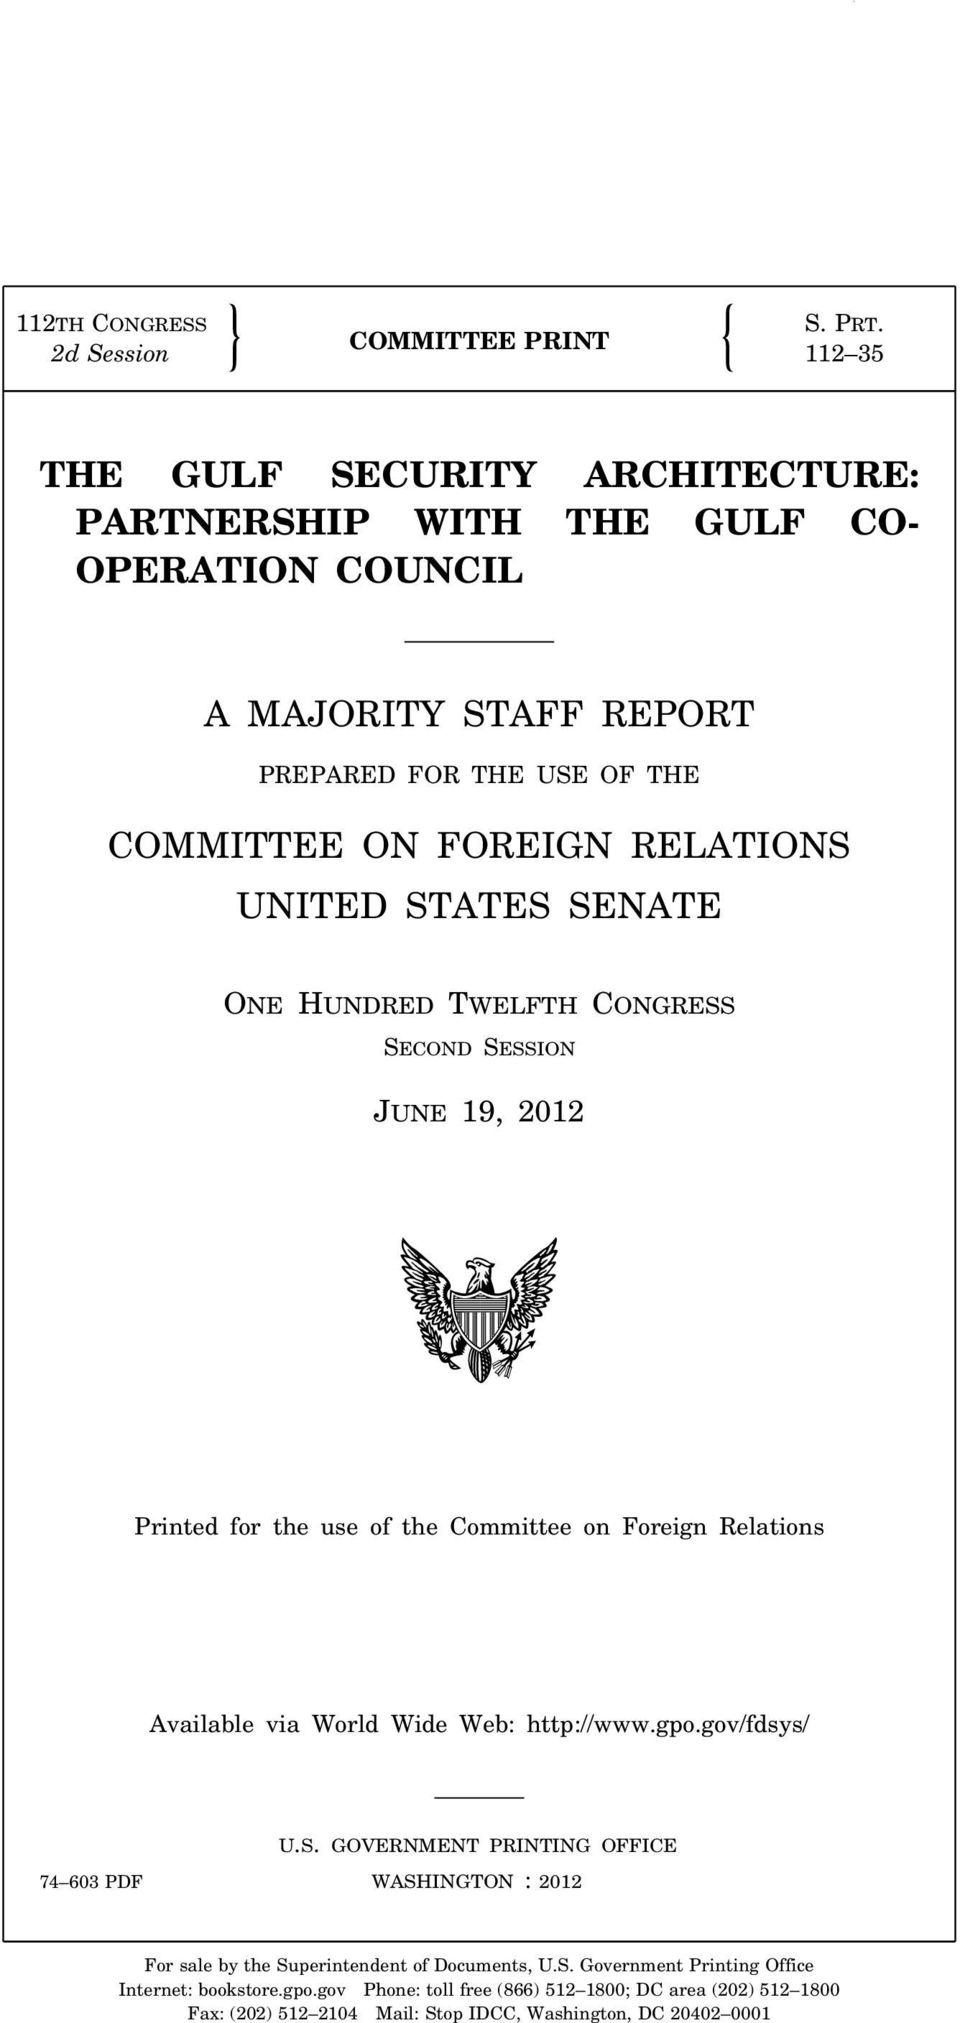 HUNDRED TWELFTH CONGRESS SECOND SESSION JUNE 19, 2012 Printed for the use of the Committee on Foreign Relations Available via World Wide Web: http://www.gpo.gov/fdsys/ 74 603 PDF U.S. GOVERNMENT PRINTING OFFICE WASHINGTON : 2012 For sale by the Superintendent of Documents, U.